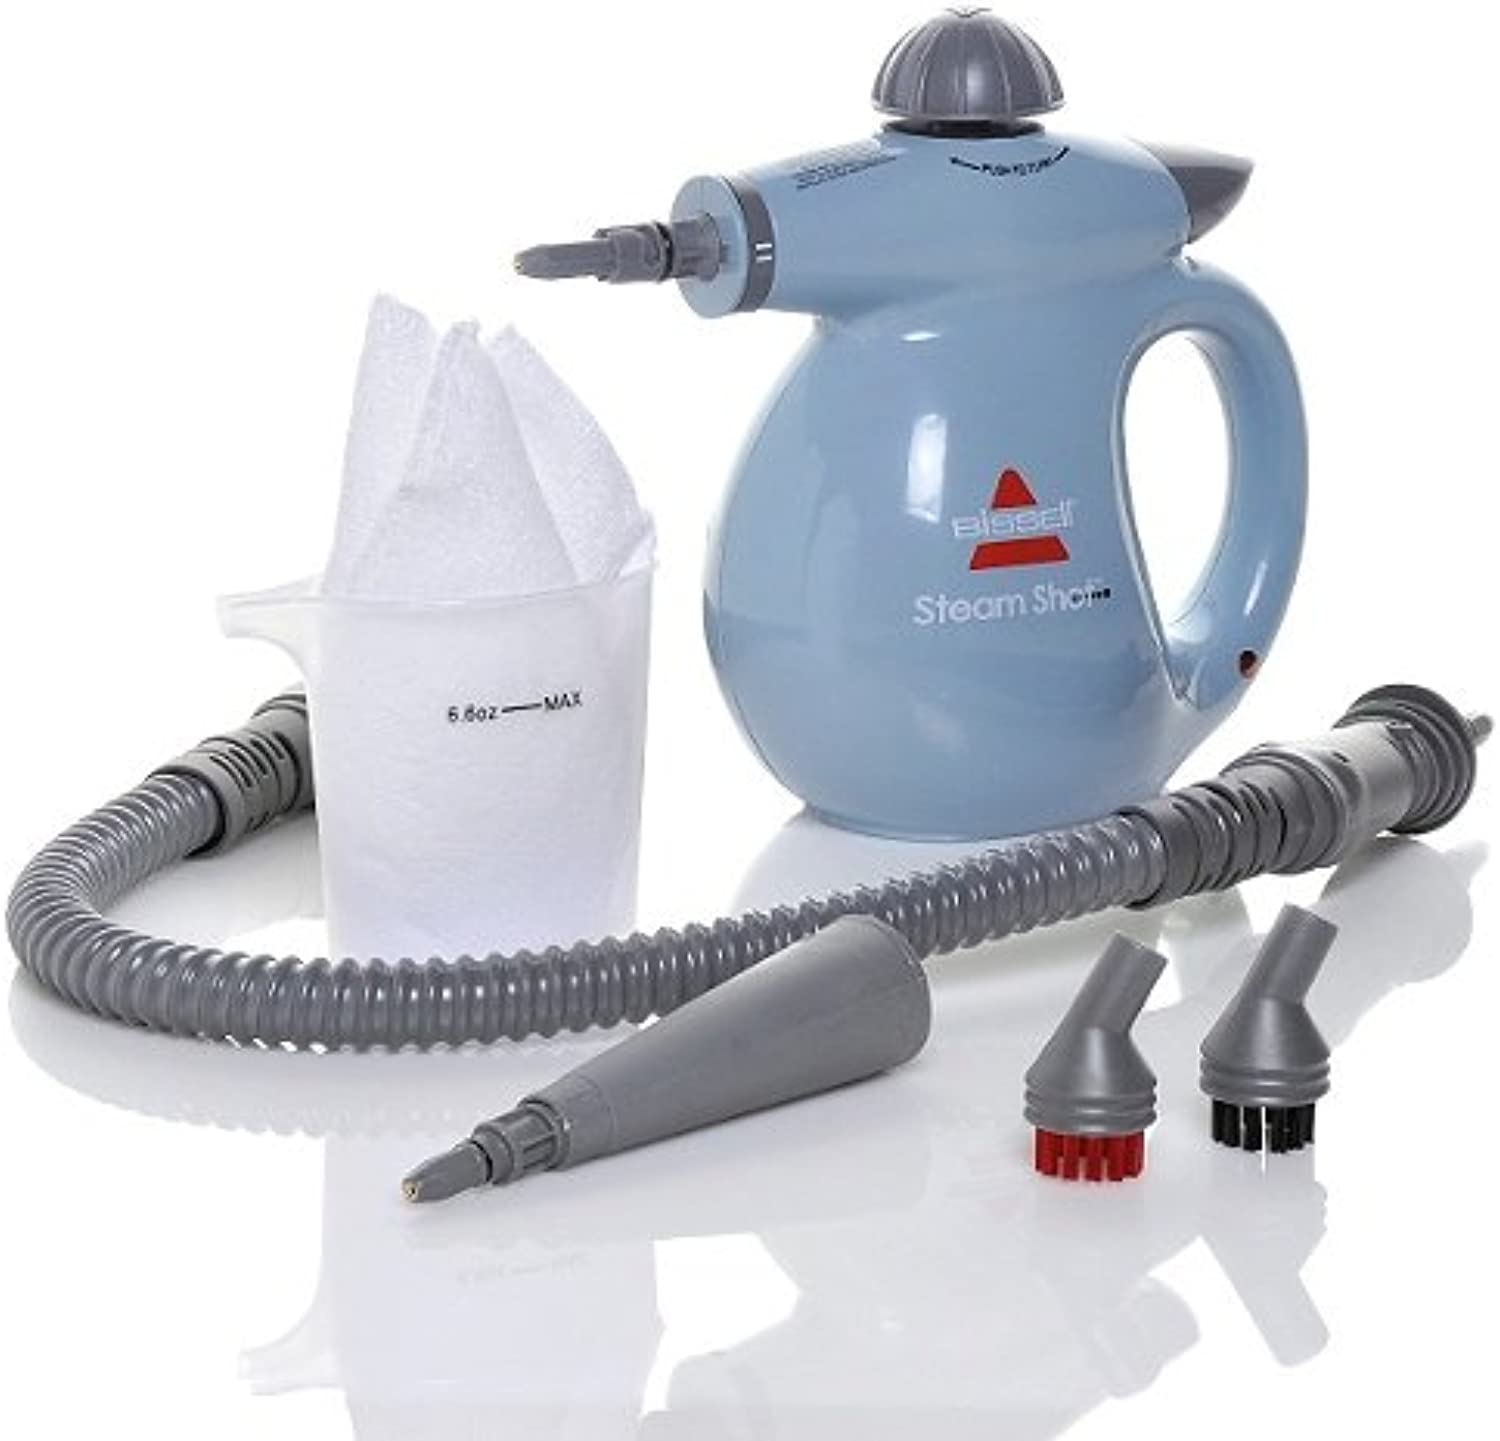 Bissell Bissel Steam Shot Hard-Surface Cleaner 39N7-8 bluee - Bissell 39N7-8